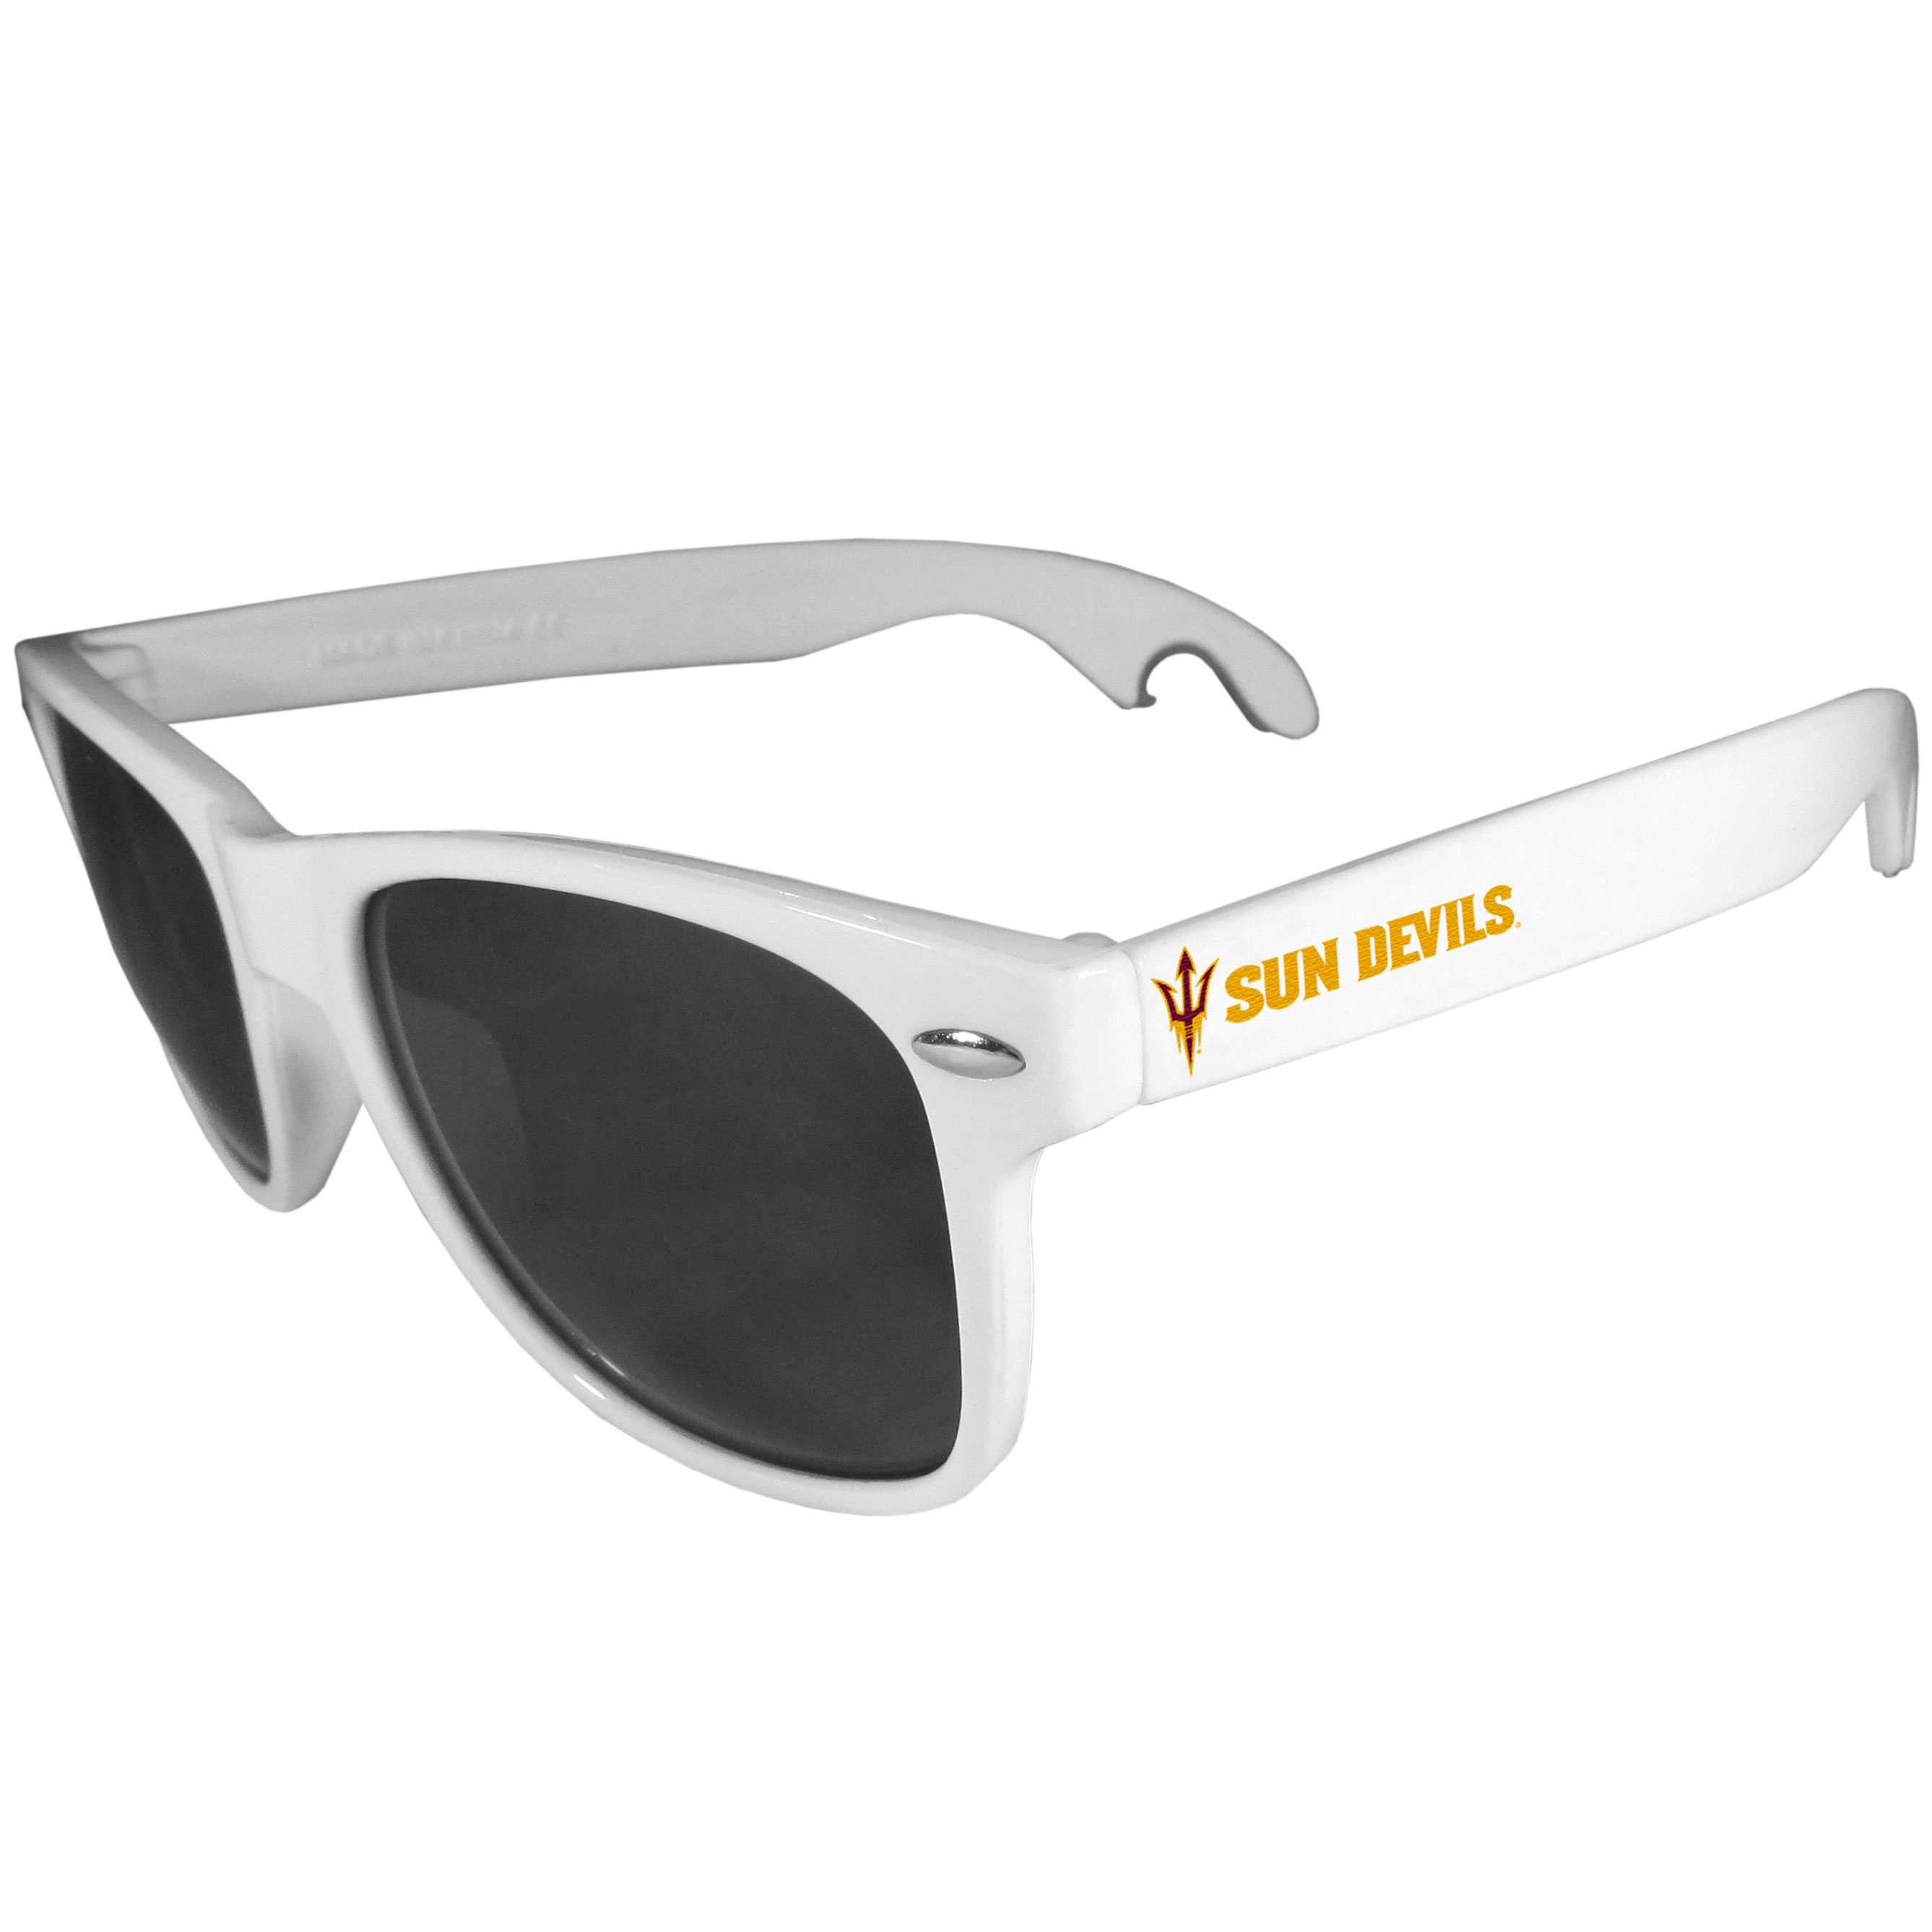 Arizona St. Sun Devils Beachfarer Bottle Opener Sunglasses, White - Seriously, these sunglasses open bottles! Keep the party going with these amazing Arizona St. Sun Devils bottle opener sunglasses. The stylish retro frames feature team designs on the arms and functional bottle openers on the end of the arms. Whether you are at the beach or having a backyard BBQ on game day, these shades will keep your eyes protected with 100% UVA/UVB protection and keep you hydrated with the handy bottle opener arms.